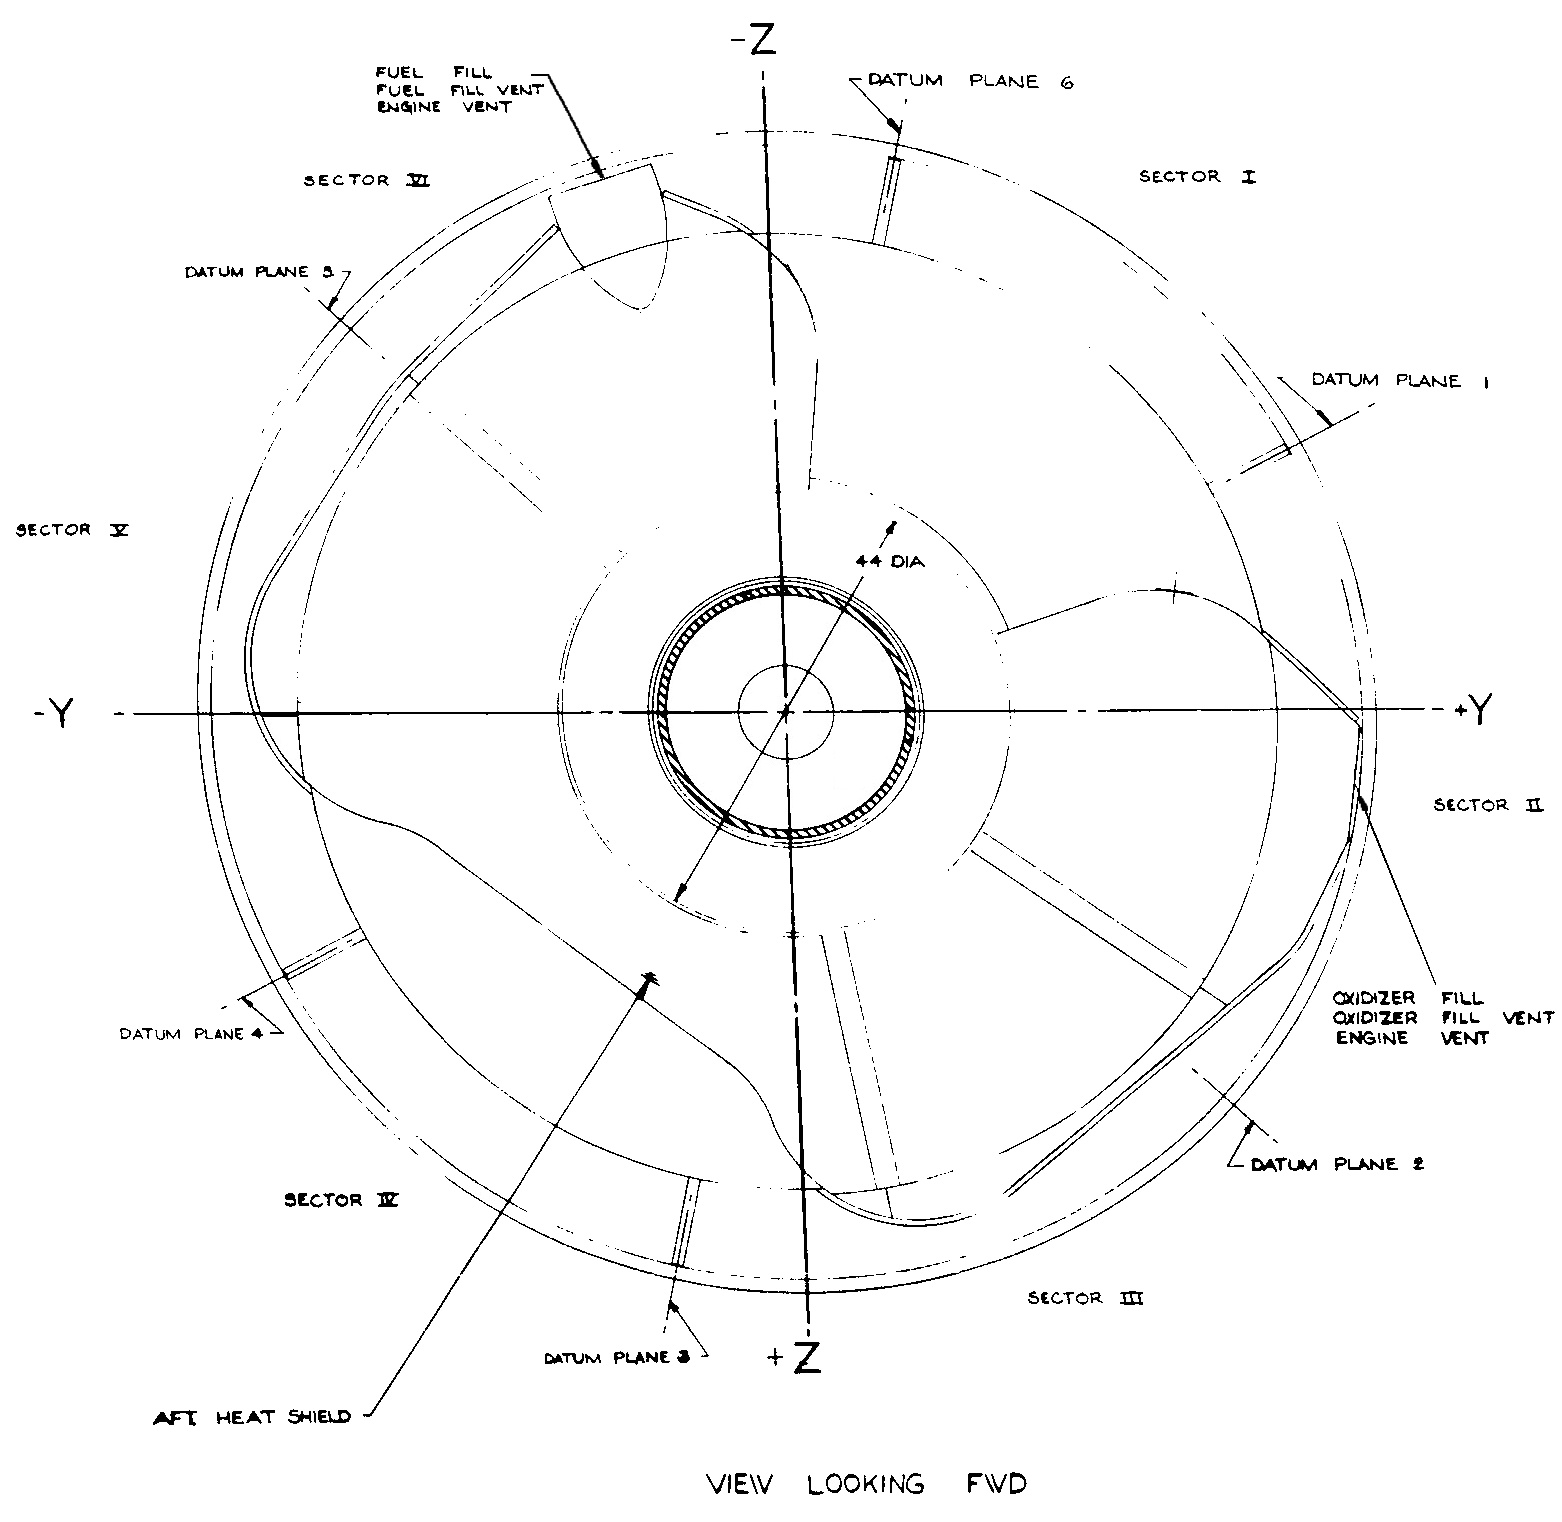 hight resolution of apollo service module service propulsion system sps servicing connections